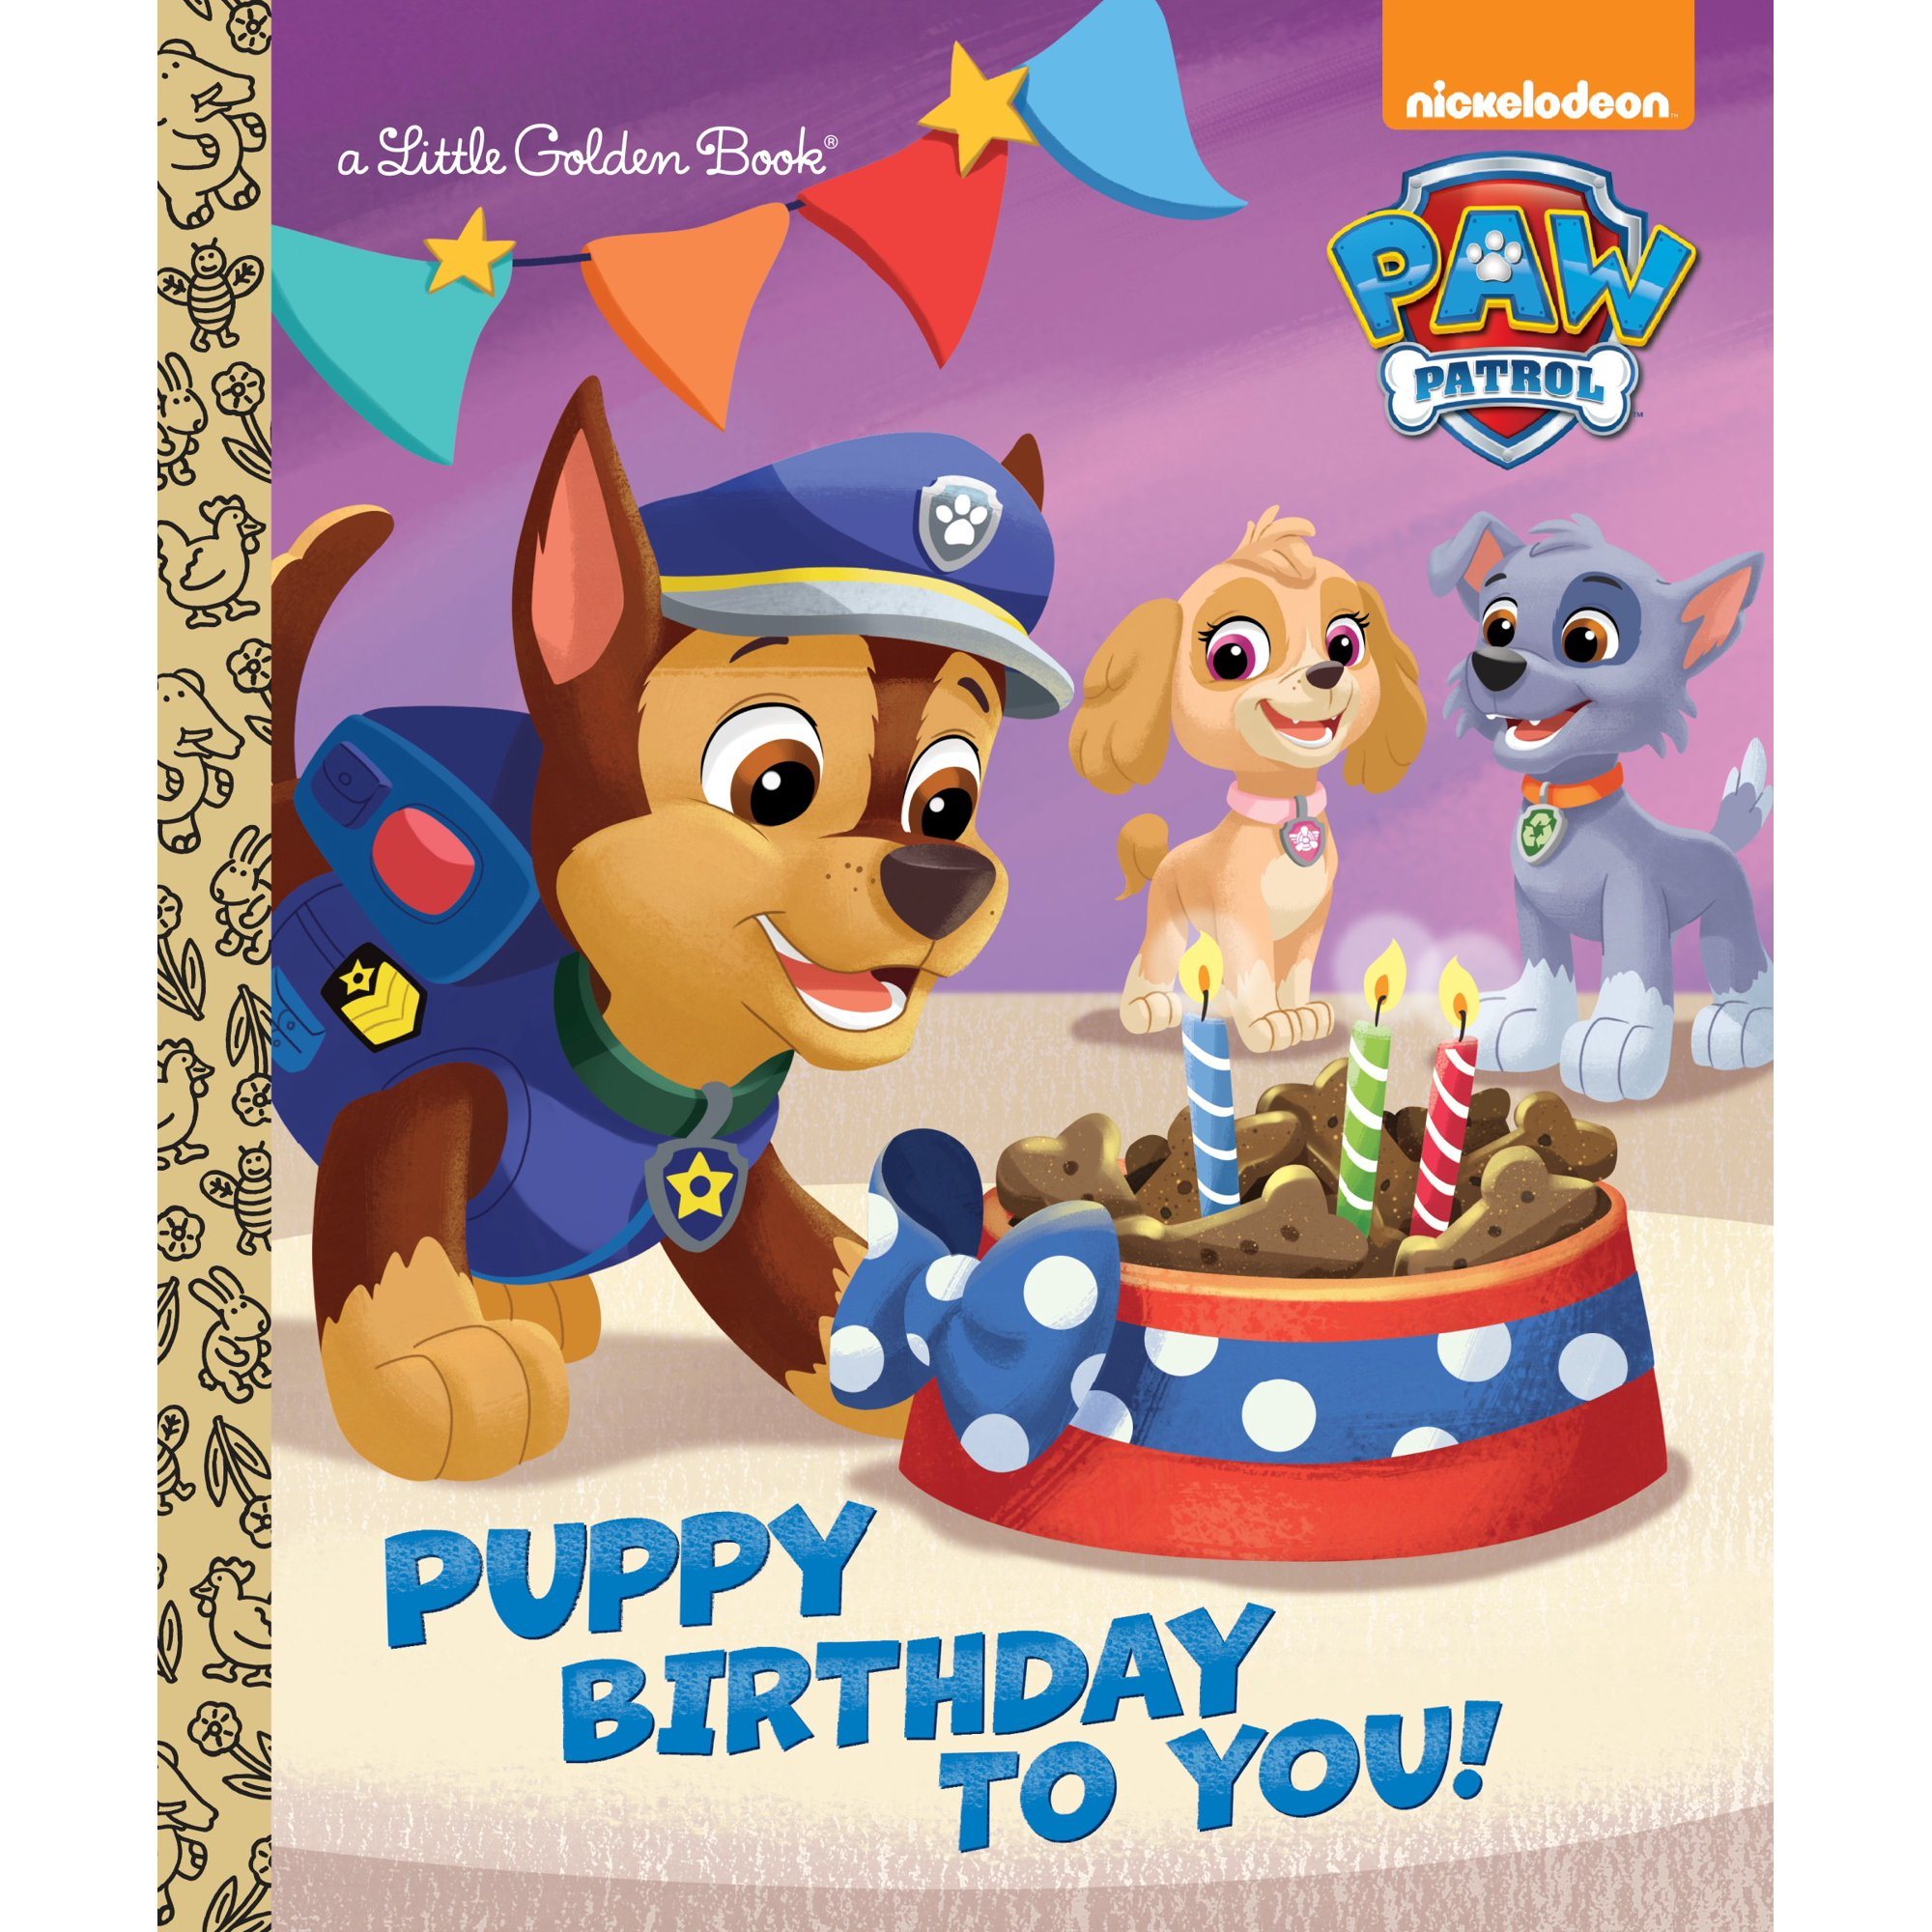 Buy Puppy Birthday To You Paw Patrol Cheapest Nickelodeon Deals